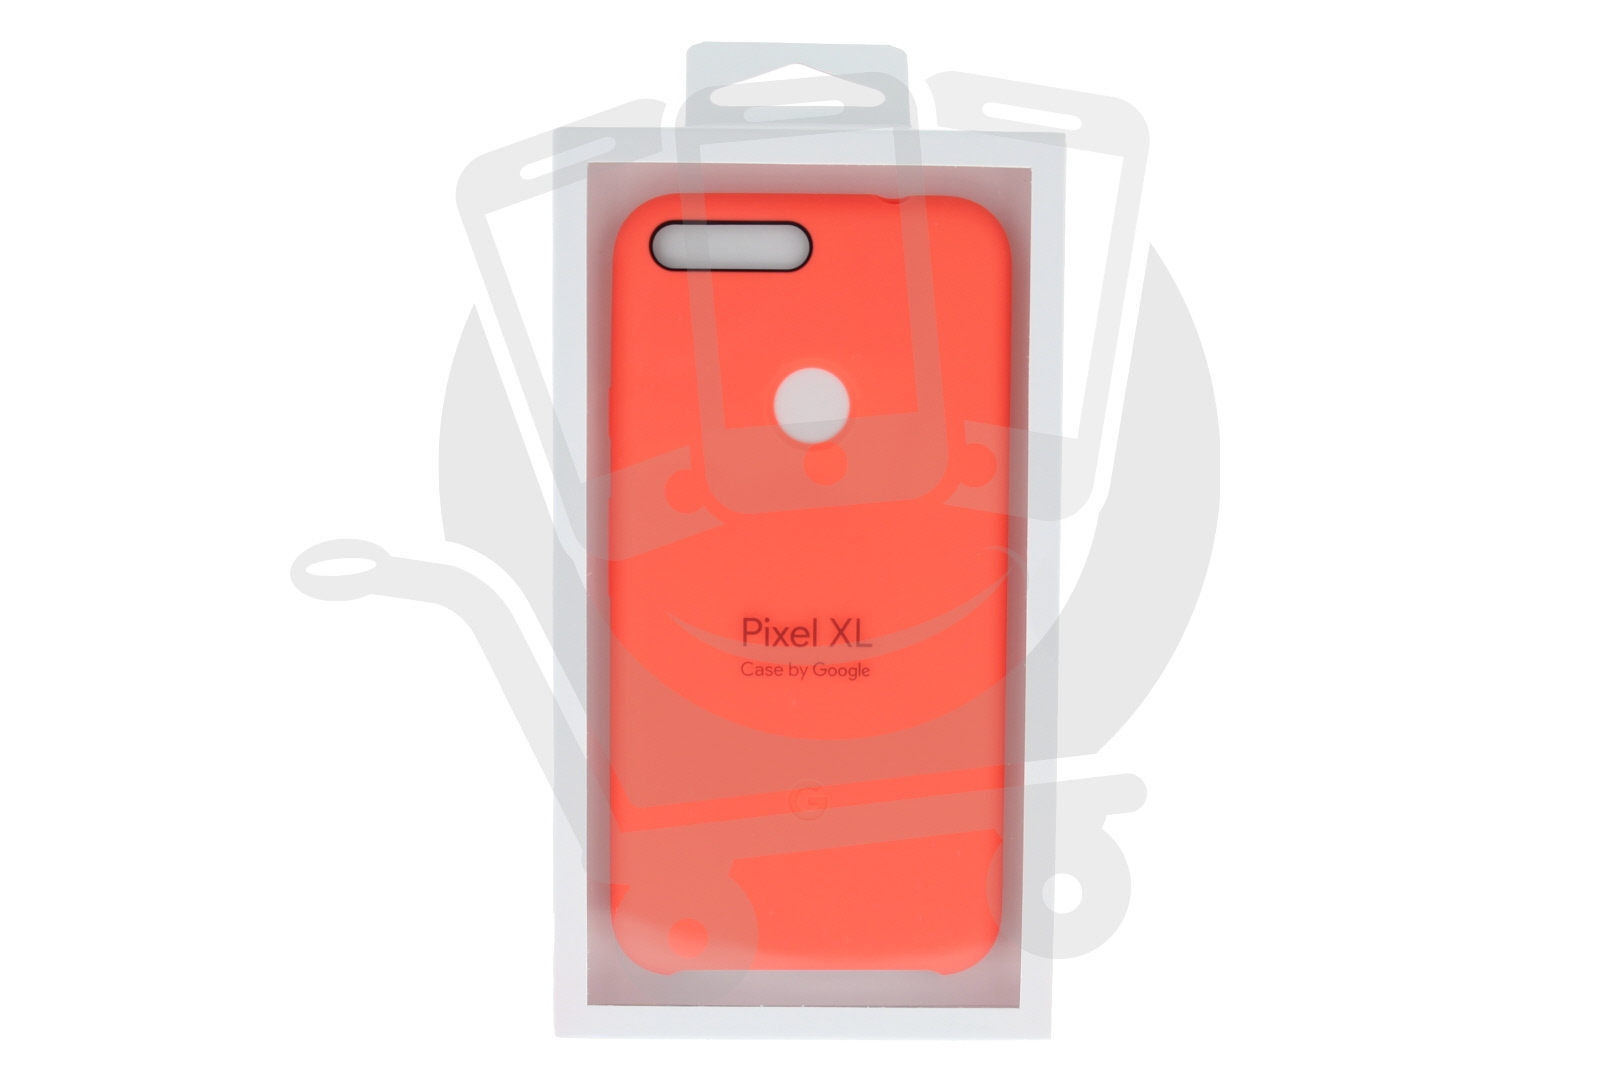 new style 082e7 584e8 Details about Official Google Pixel XL Coral Silicone Case / Cover -  GA3C00418-A00